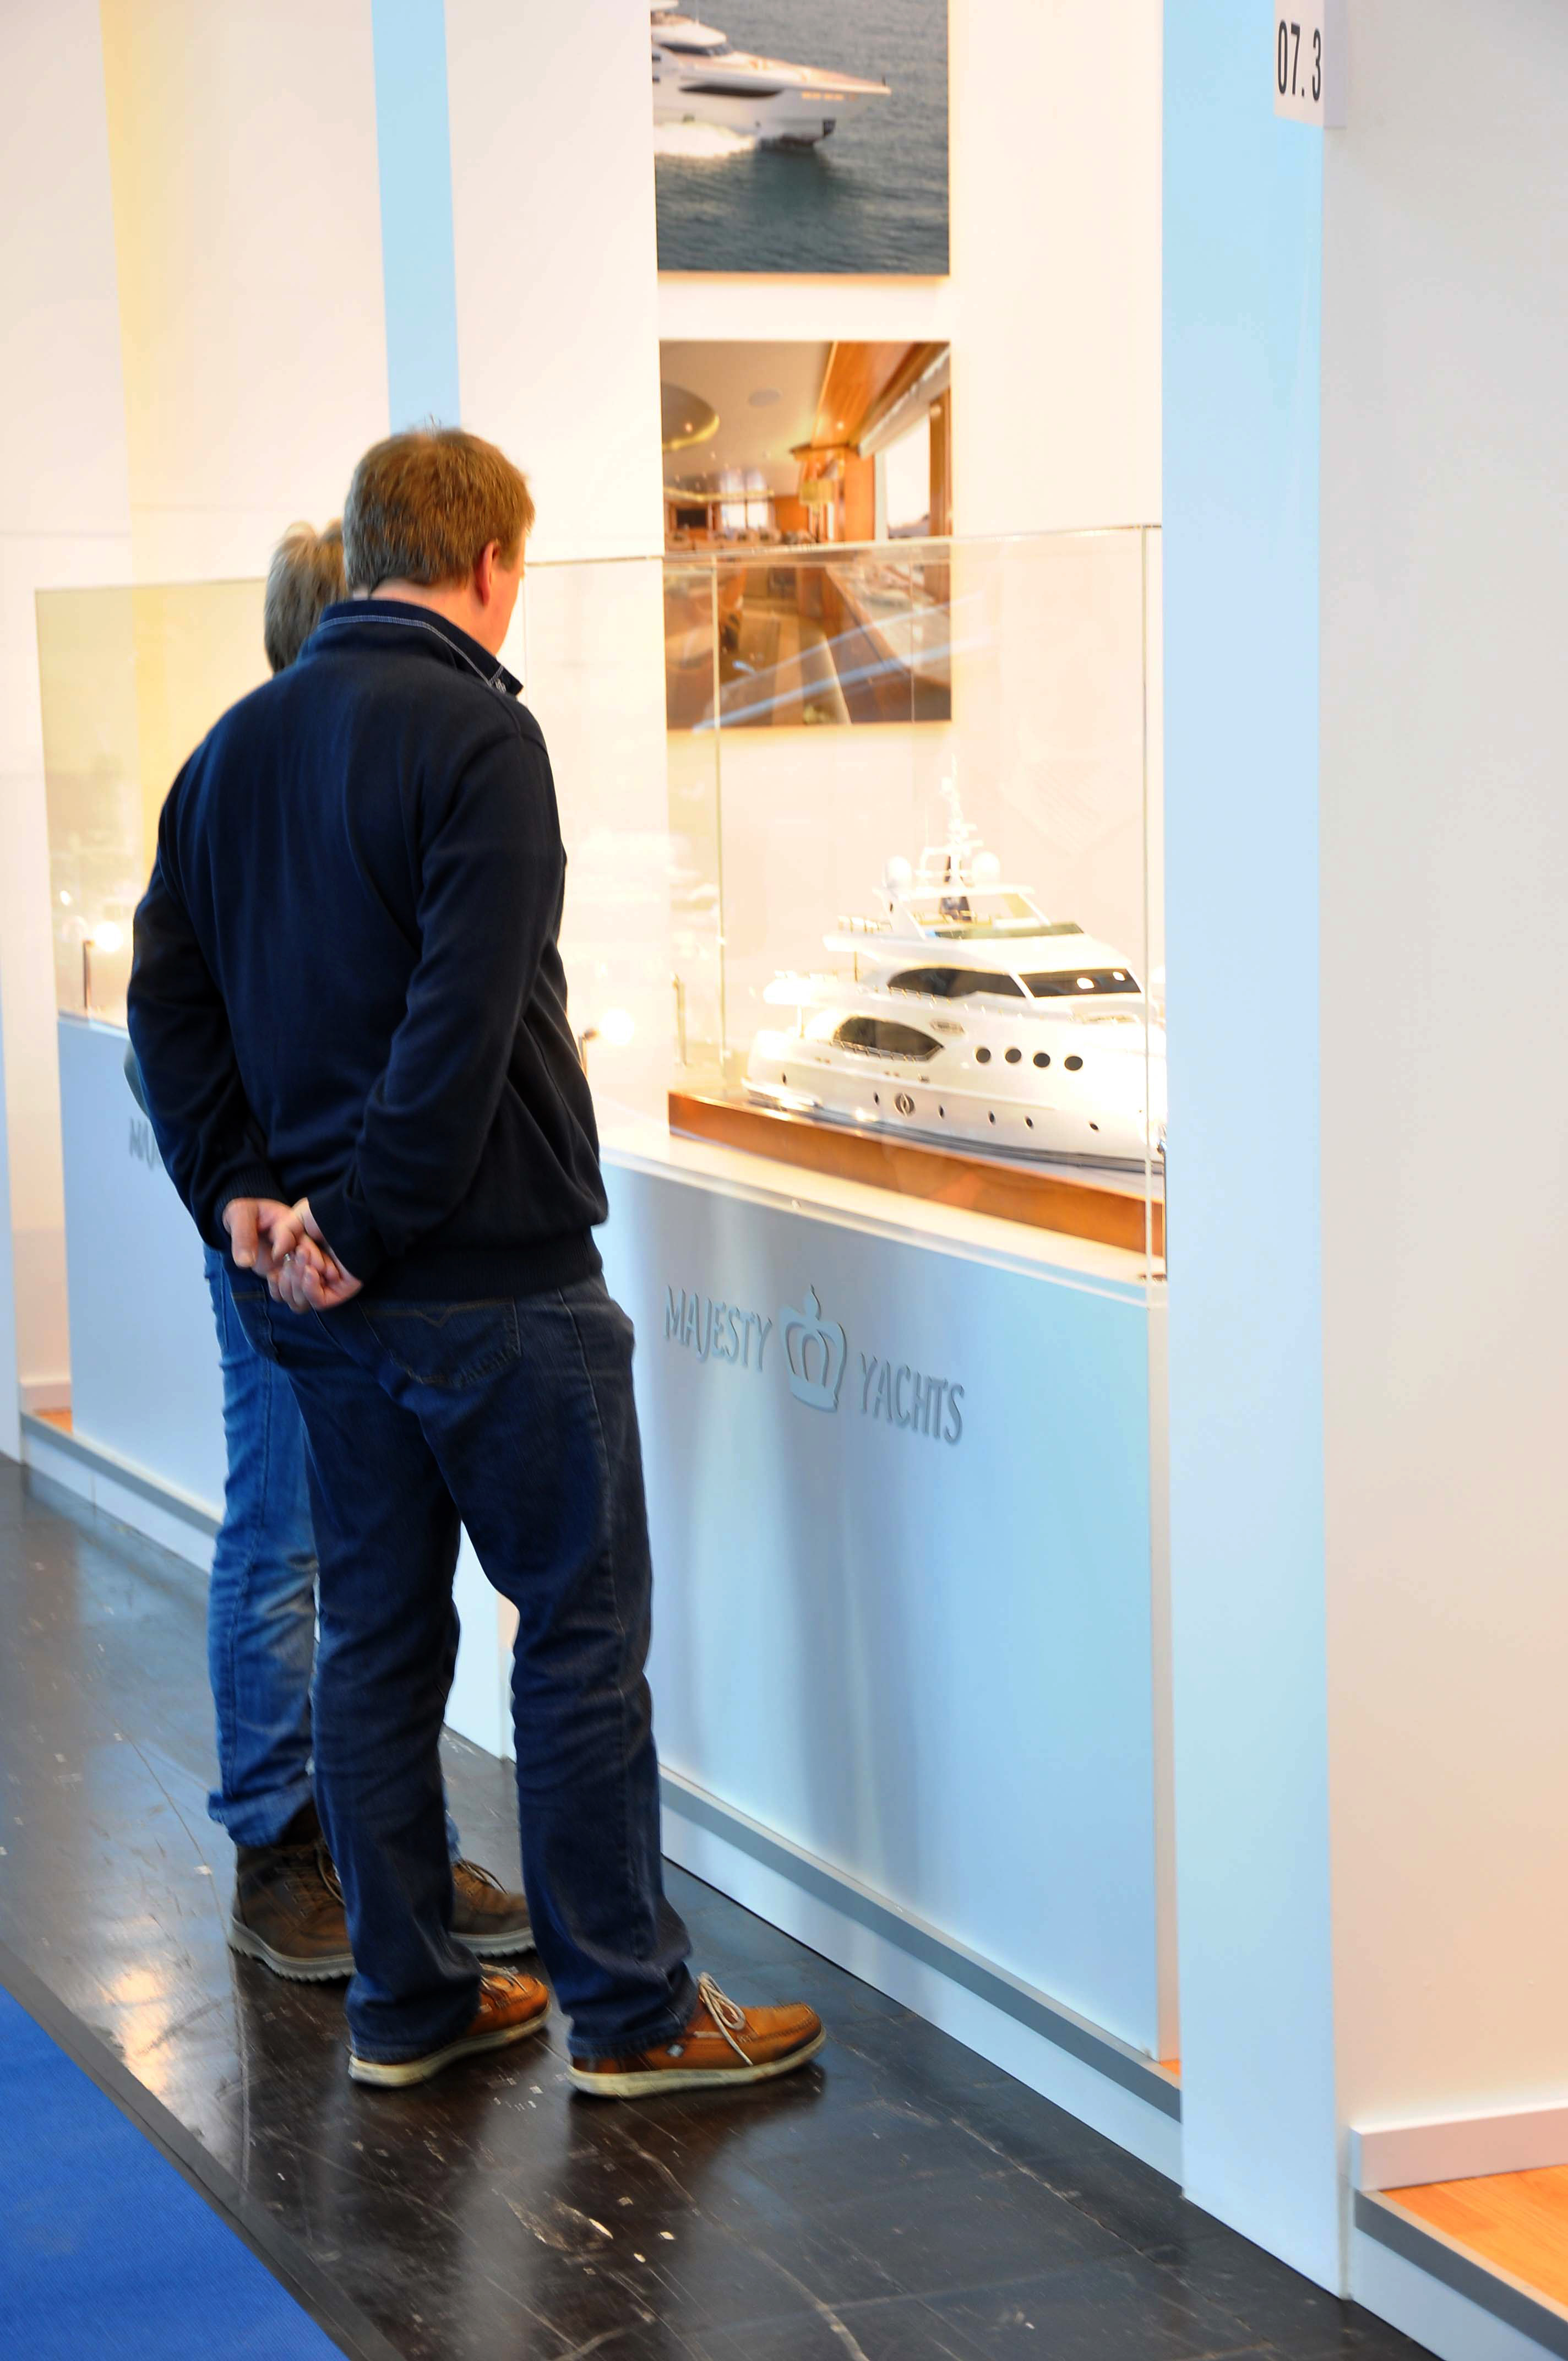 Guests checking out the Majesty 135 scale model at the Dusseldorf Boat Show 2014